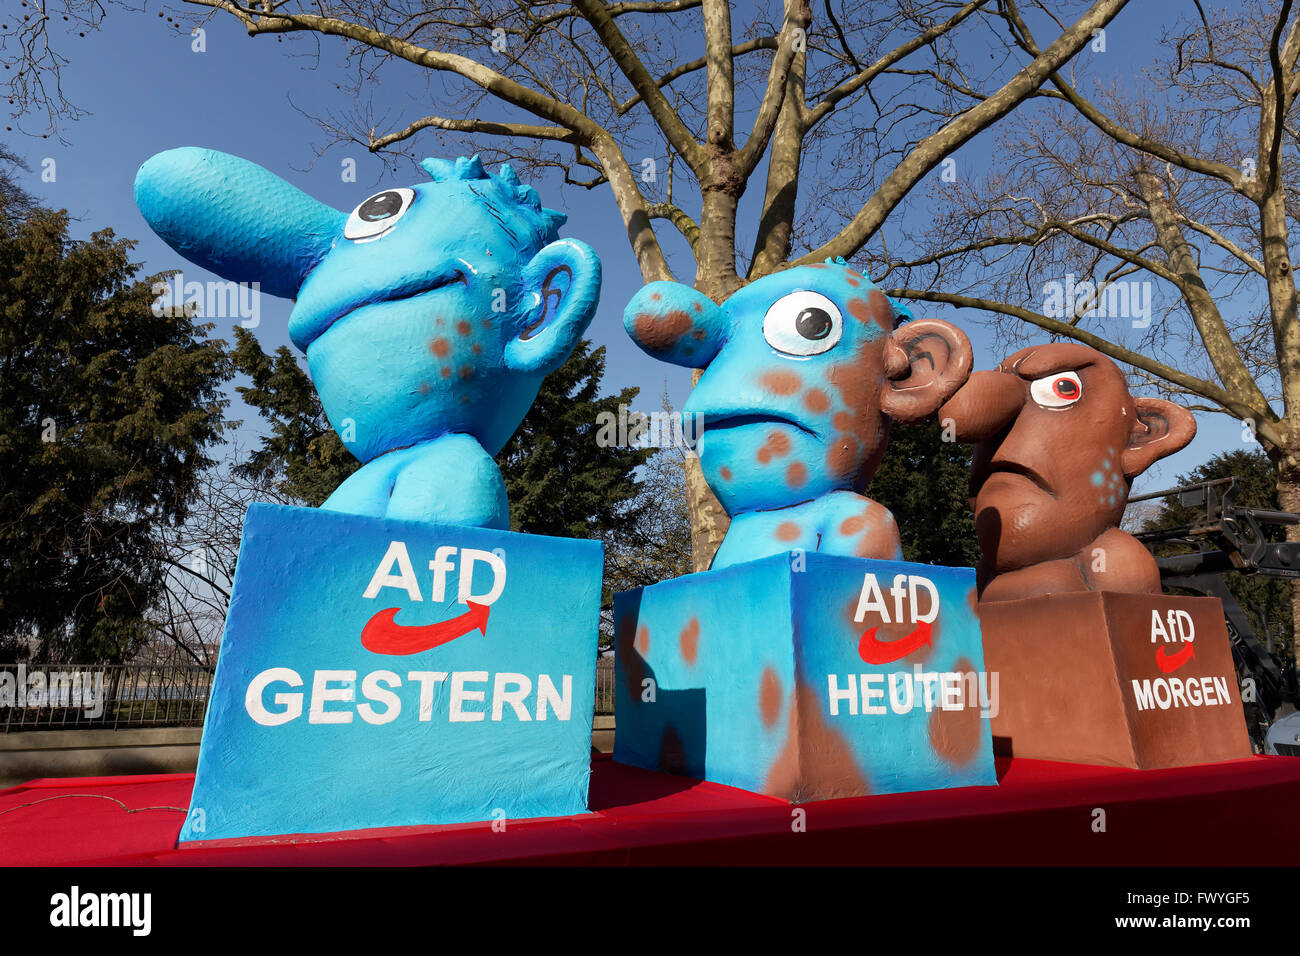 Figures representing the AfD yesterday, today, tomorrow, political caricature by Jacques Tilly, float, Rose Monday - Stock Image